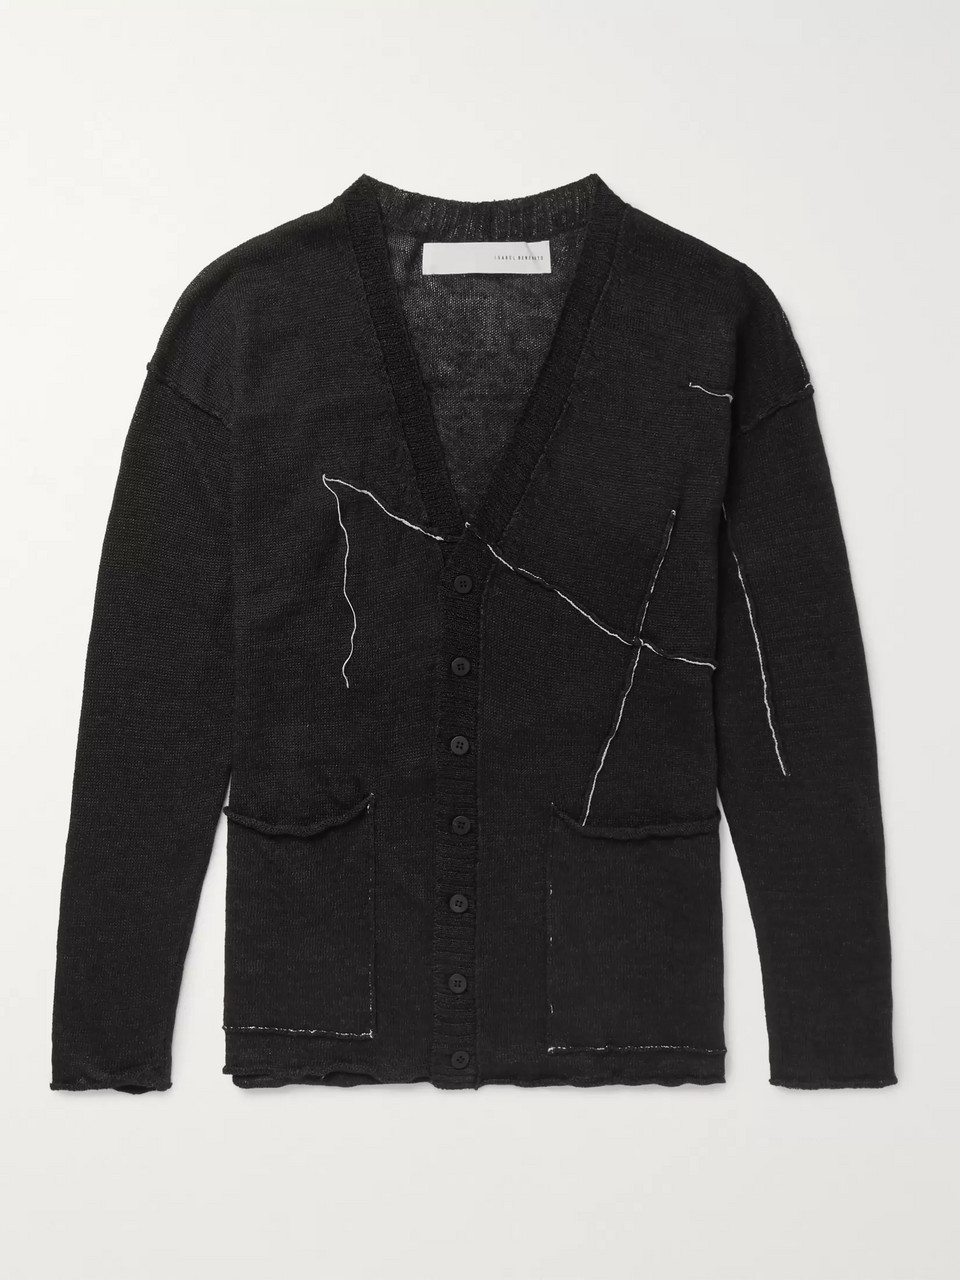 Isabel Benenato Slim-Fit Embroidered Linen Cardigan